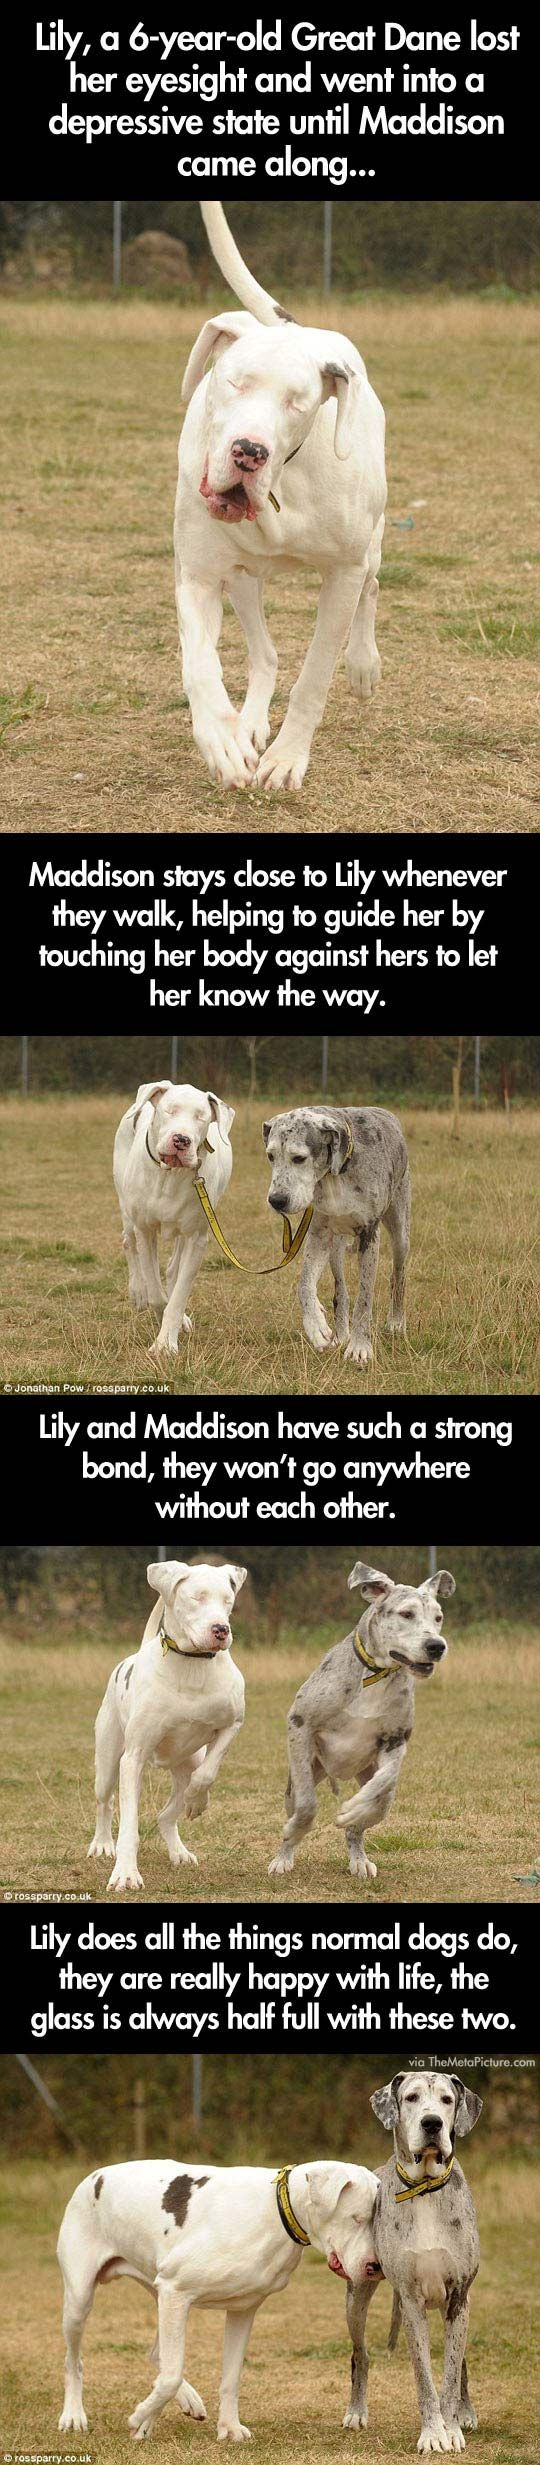 Blind Great Dane and her guide dog // funny pictures - funny photos - funny images - funny pics - funny quotes - #lol #humor #funnypictures